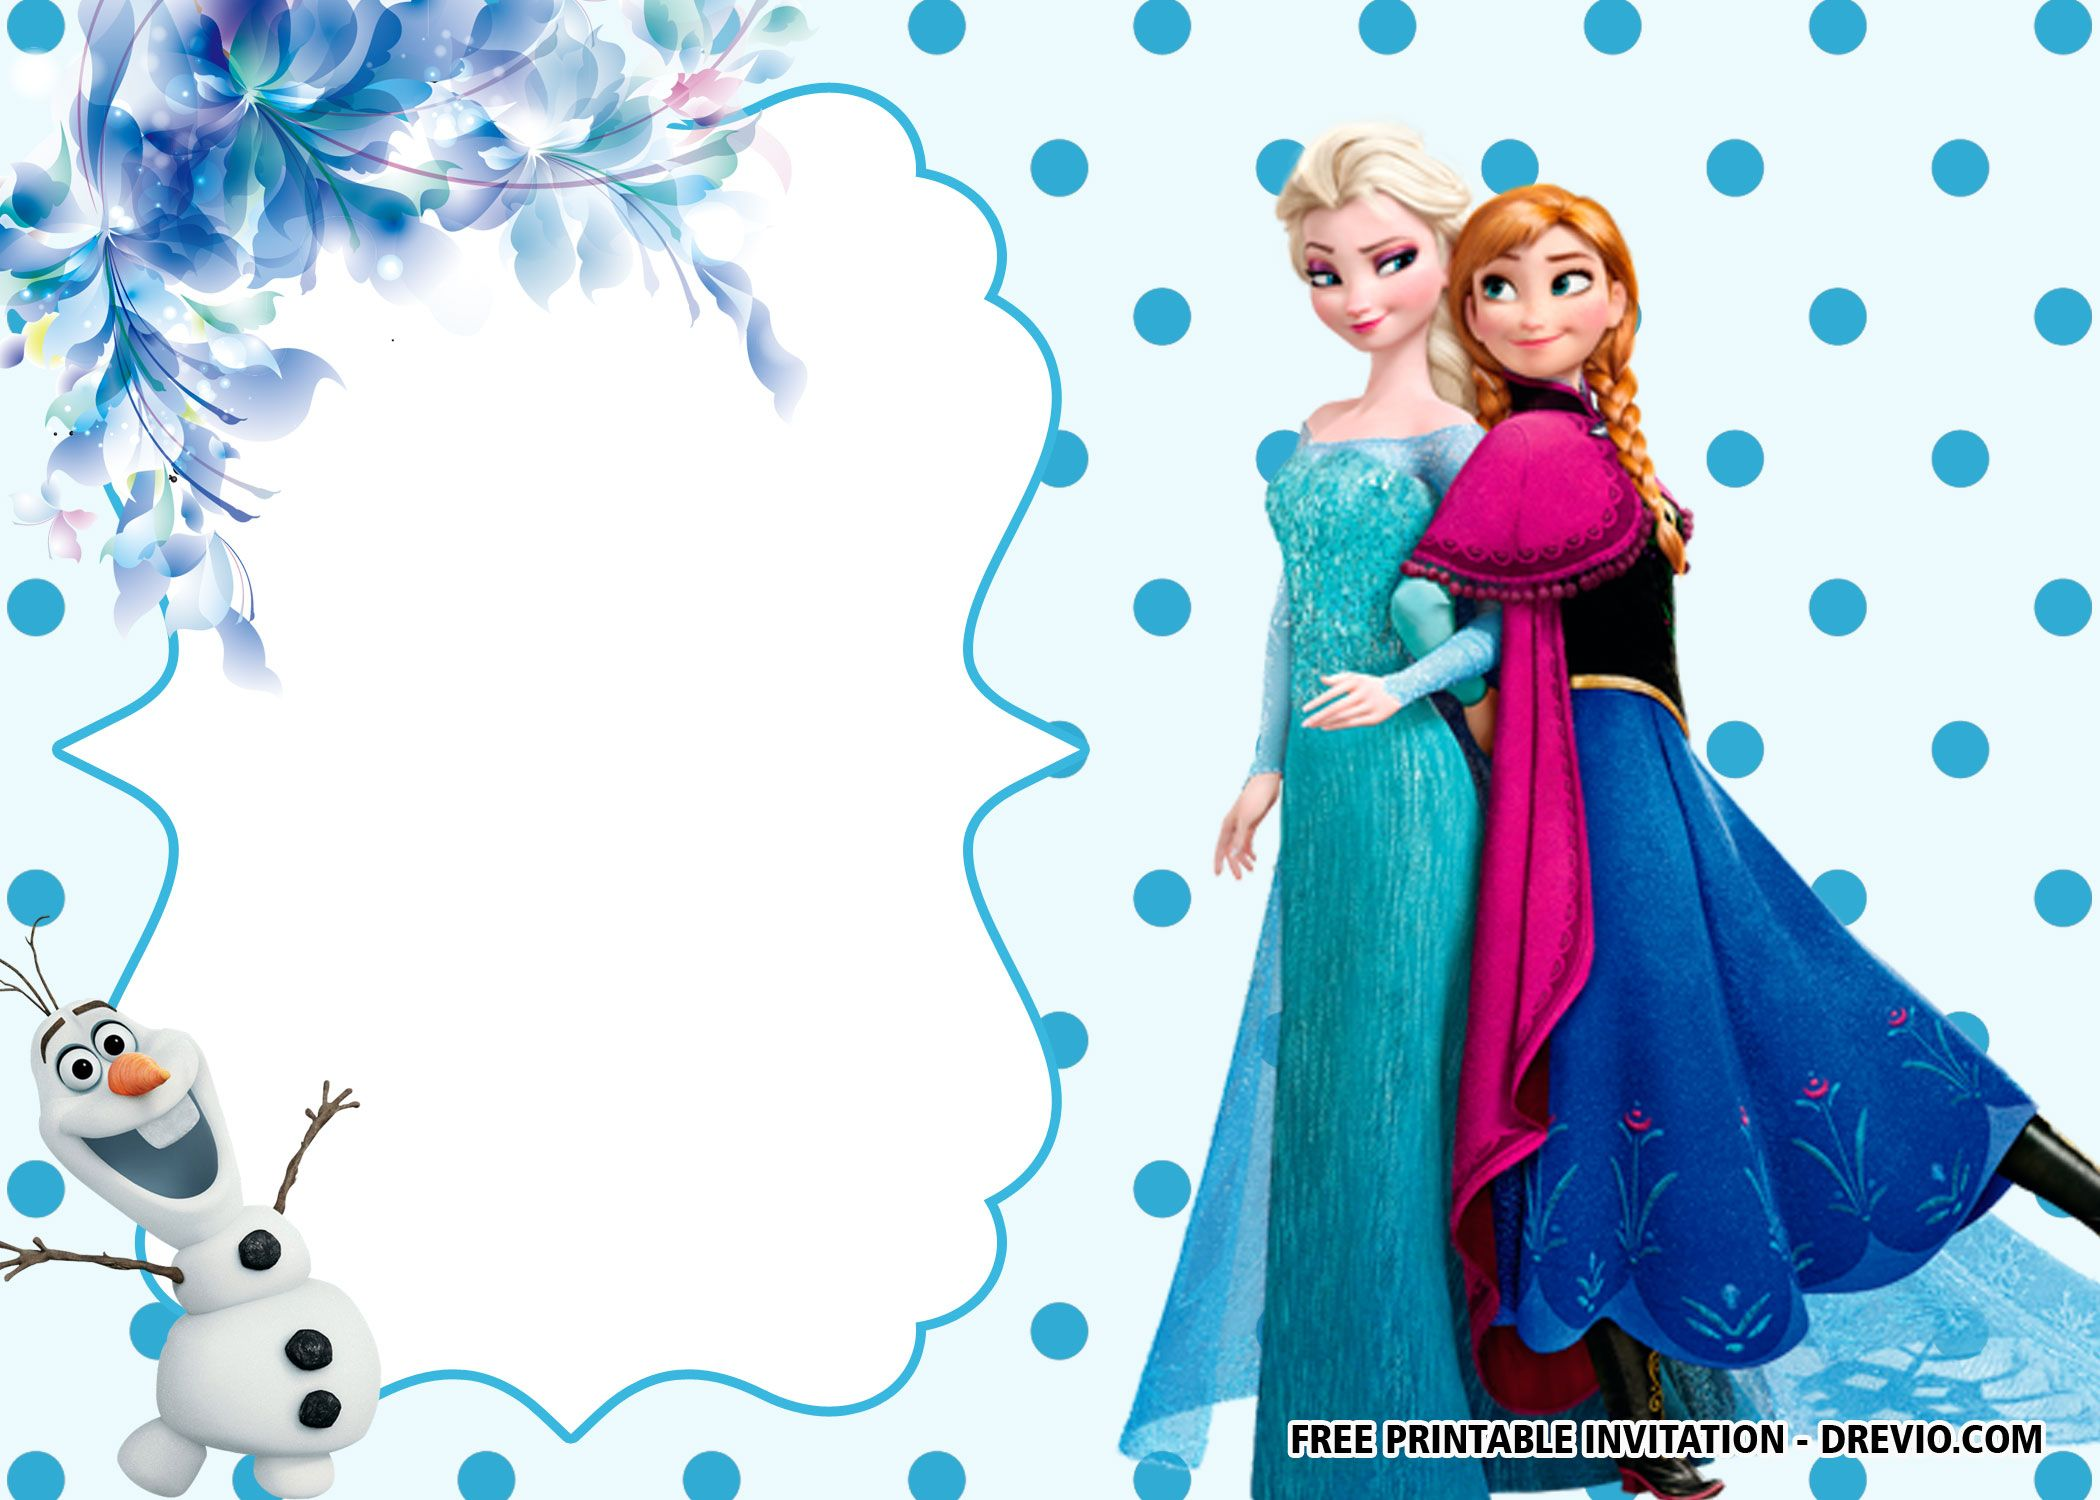 Free Printable Frozen Anna And Elsa Invitation Templates Frozen Invitations Free Printable Birthday Invitations Printable Birthday Invitations